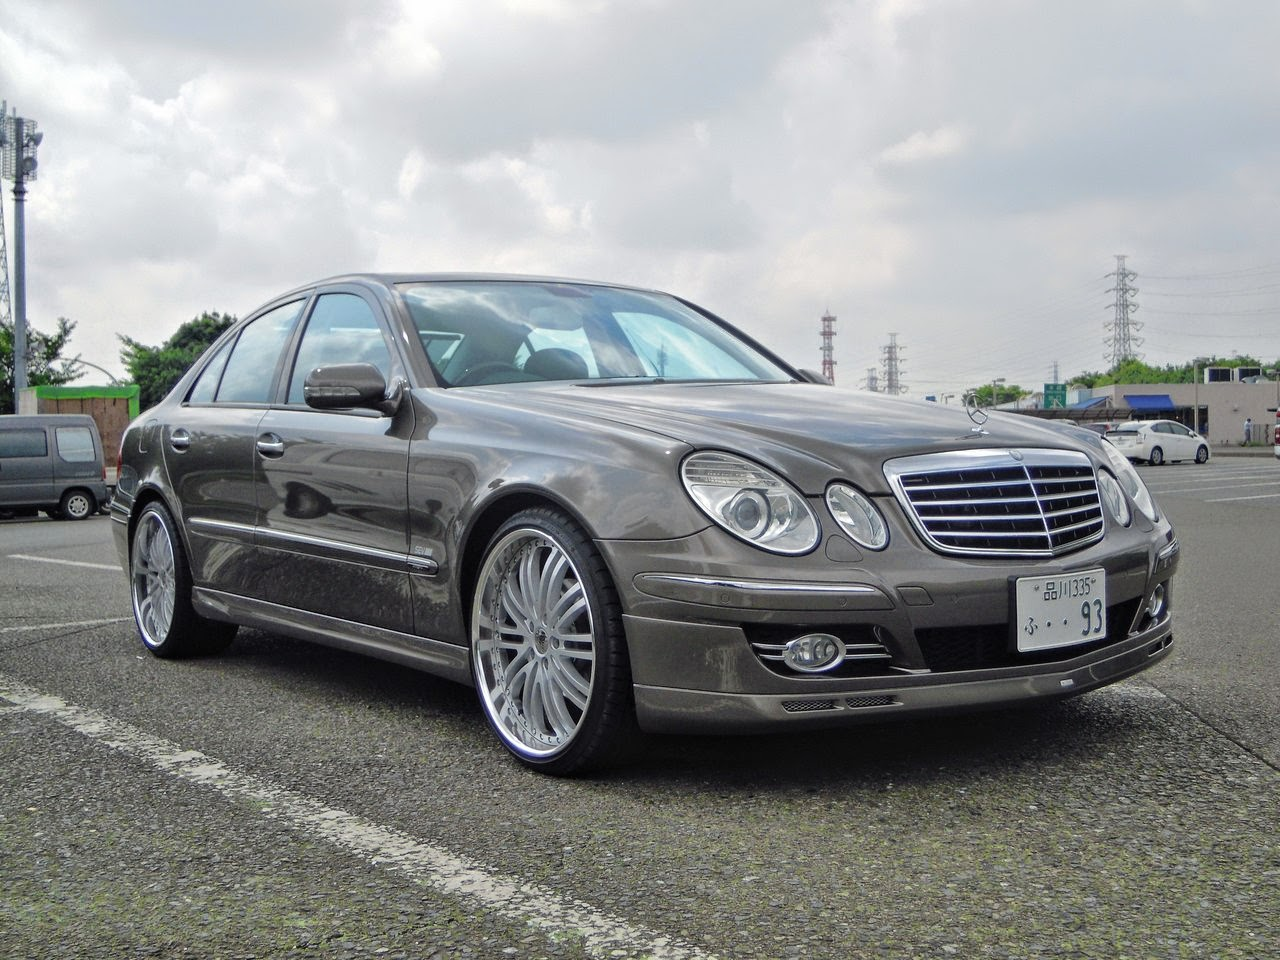 Mercedes benz w211 on auto couture lative wheels benztuning for Mercedes benz wheel